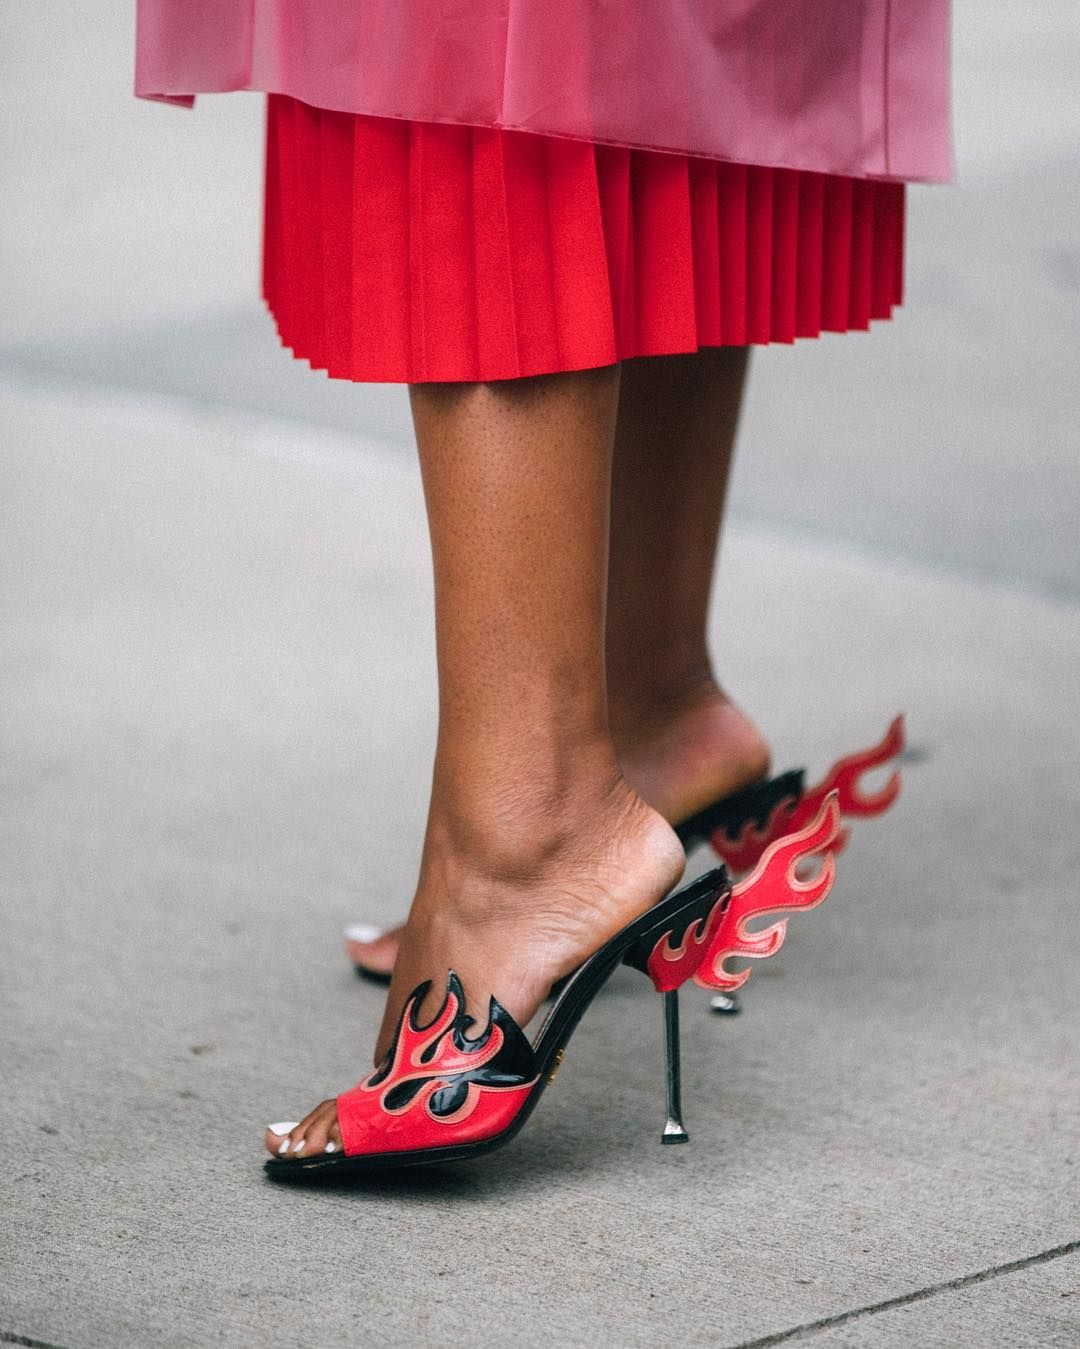 2e8a7ea9f00 Street style on fire this #NYFW! Shoes are Prada Flame-Detailed ...